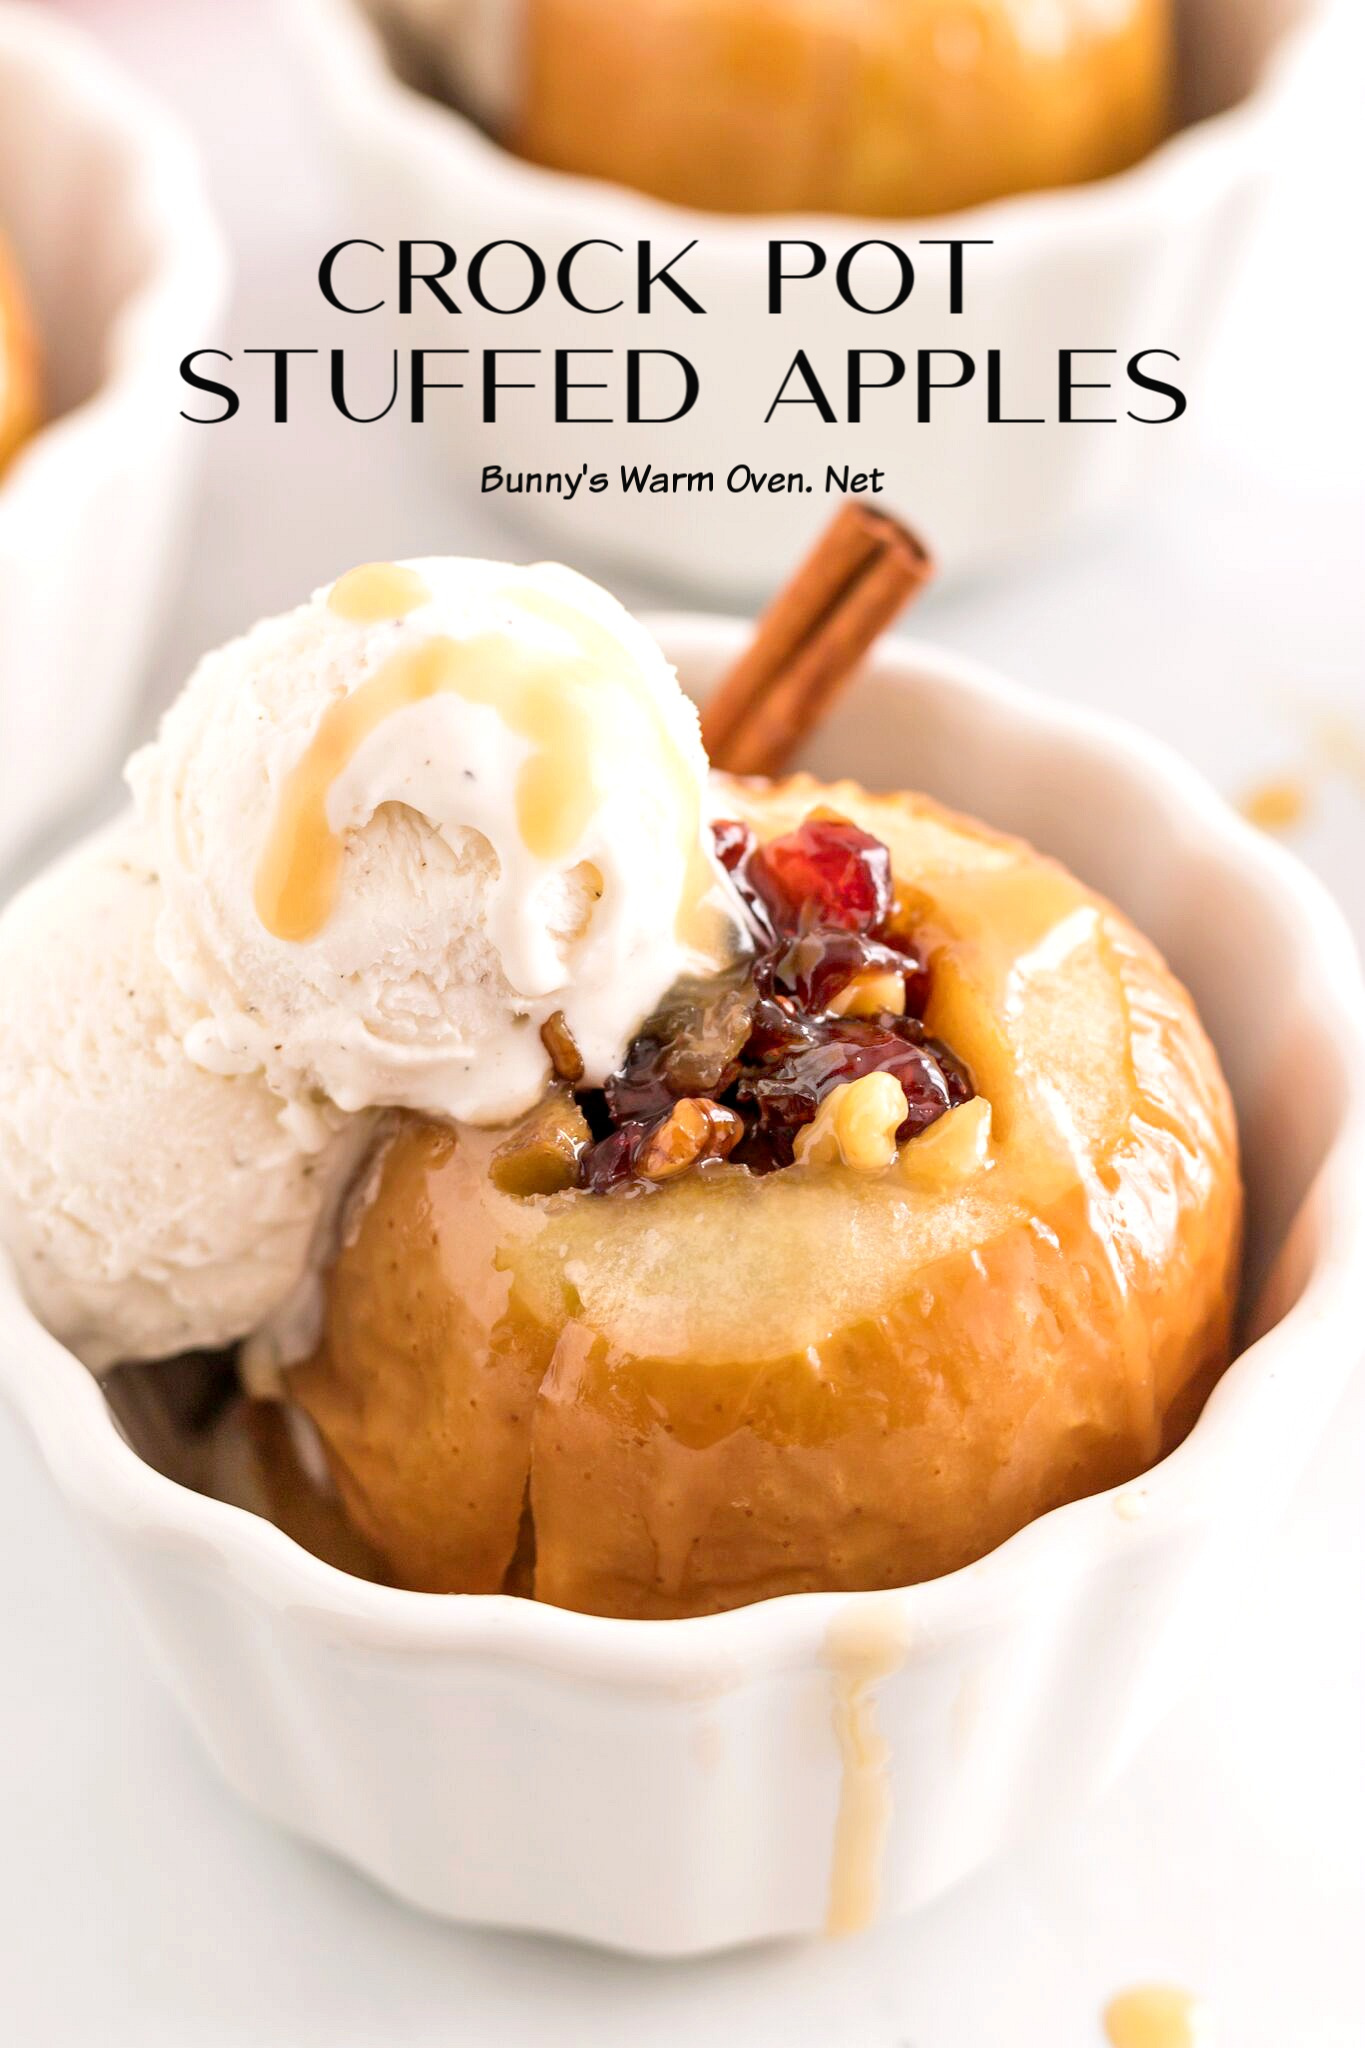 Crock Pot Stuffed Apples